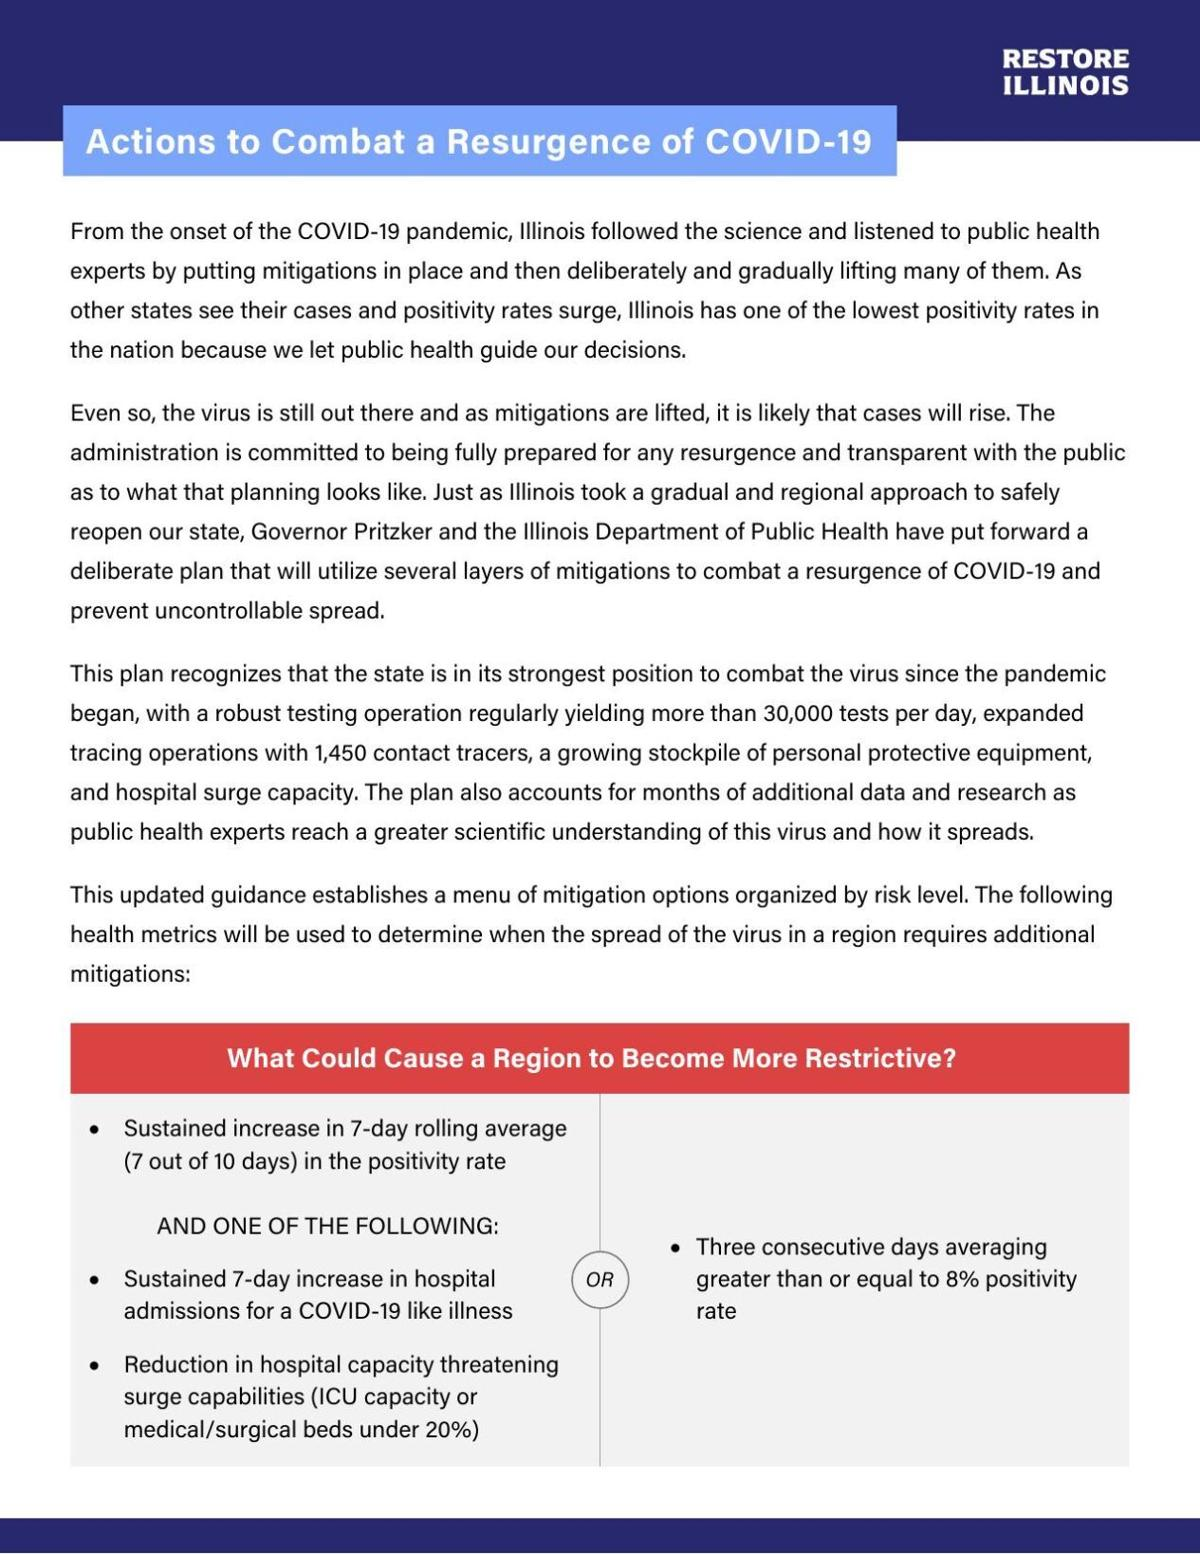 Document: Actions to Combat a Resurgence of COVID-19, released by Gov. Pritzker's office